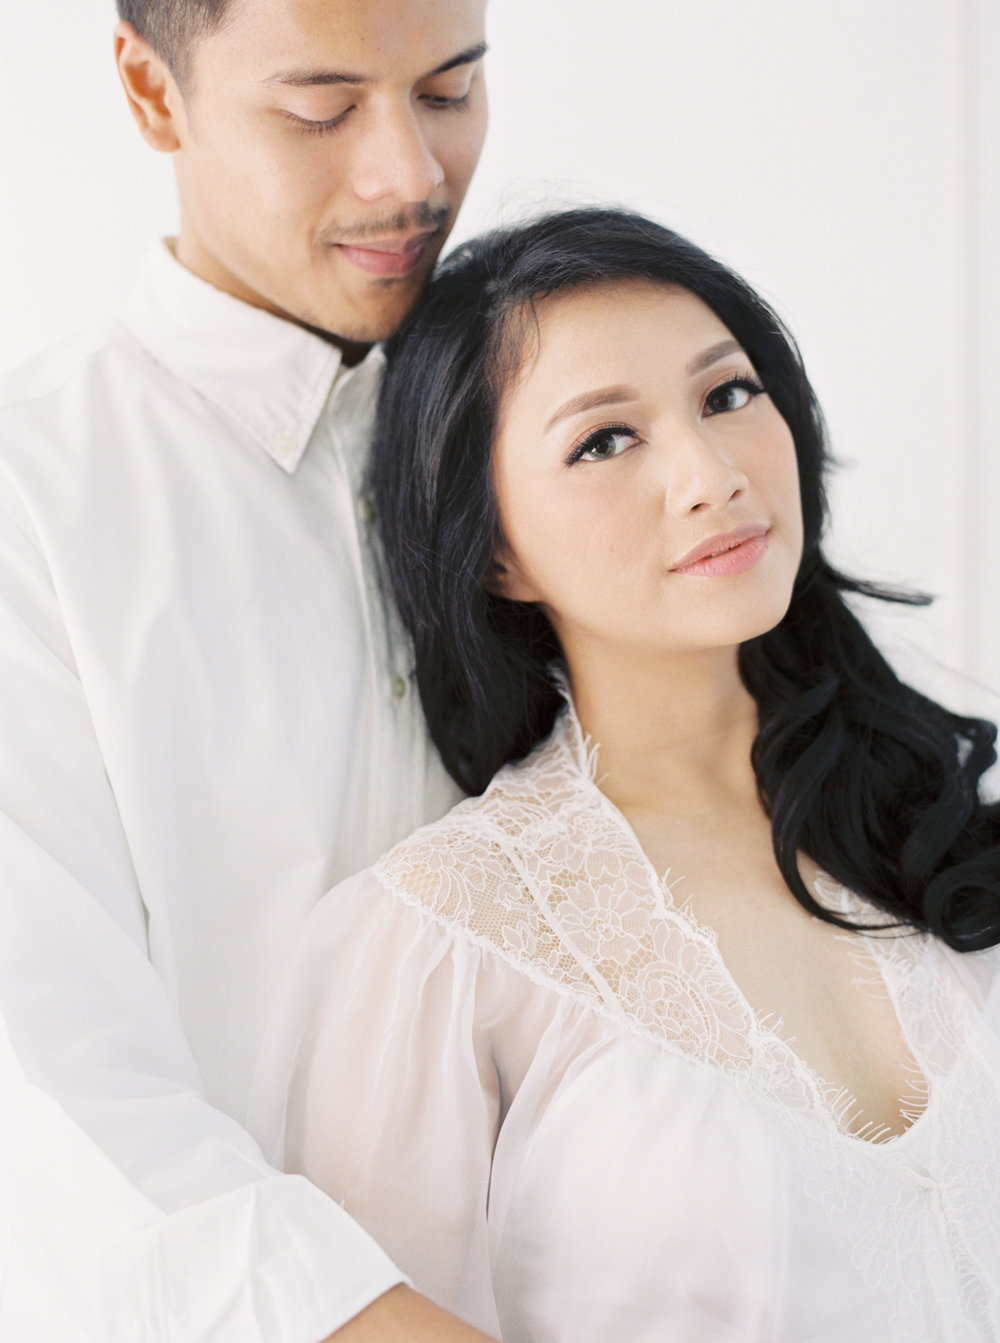 Romantic Elegant Couple Maternity Portrait - Studio June - Film Photography & Styling - Jakarta-39.jpg